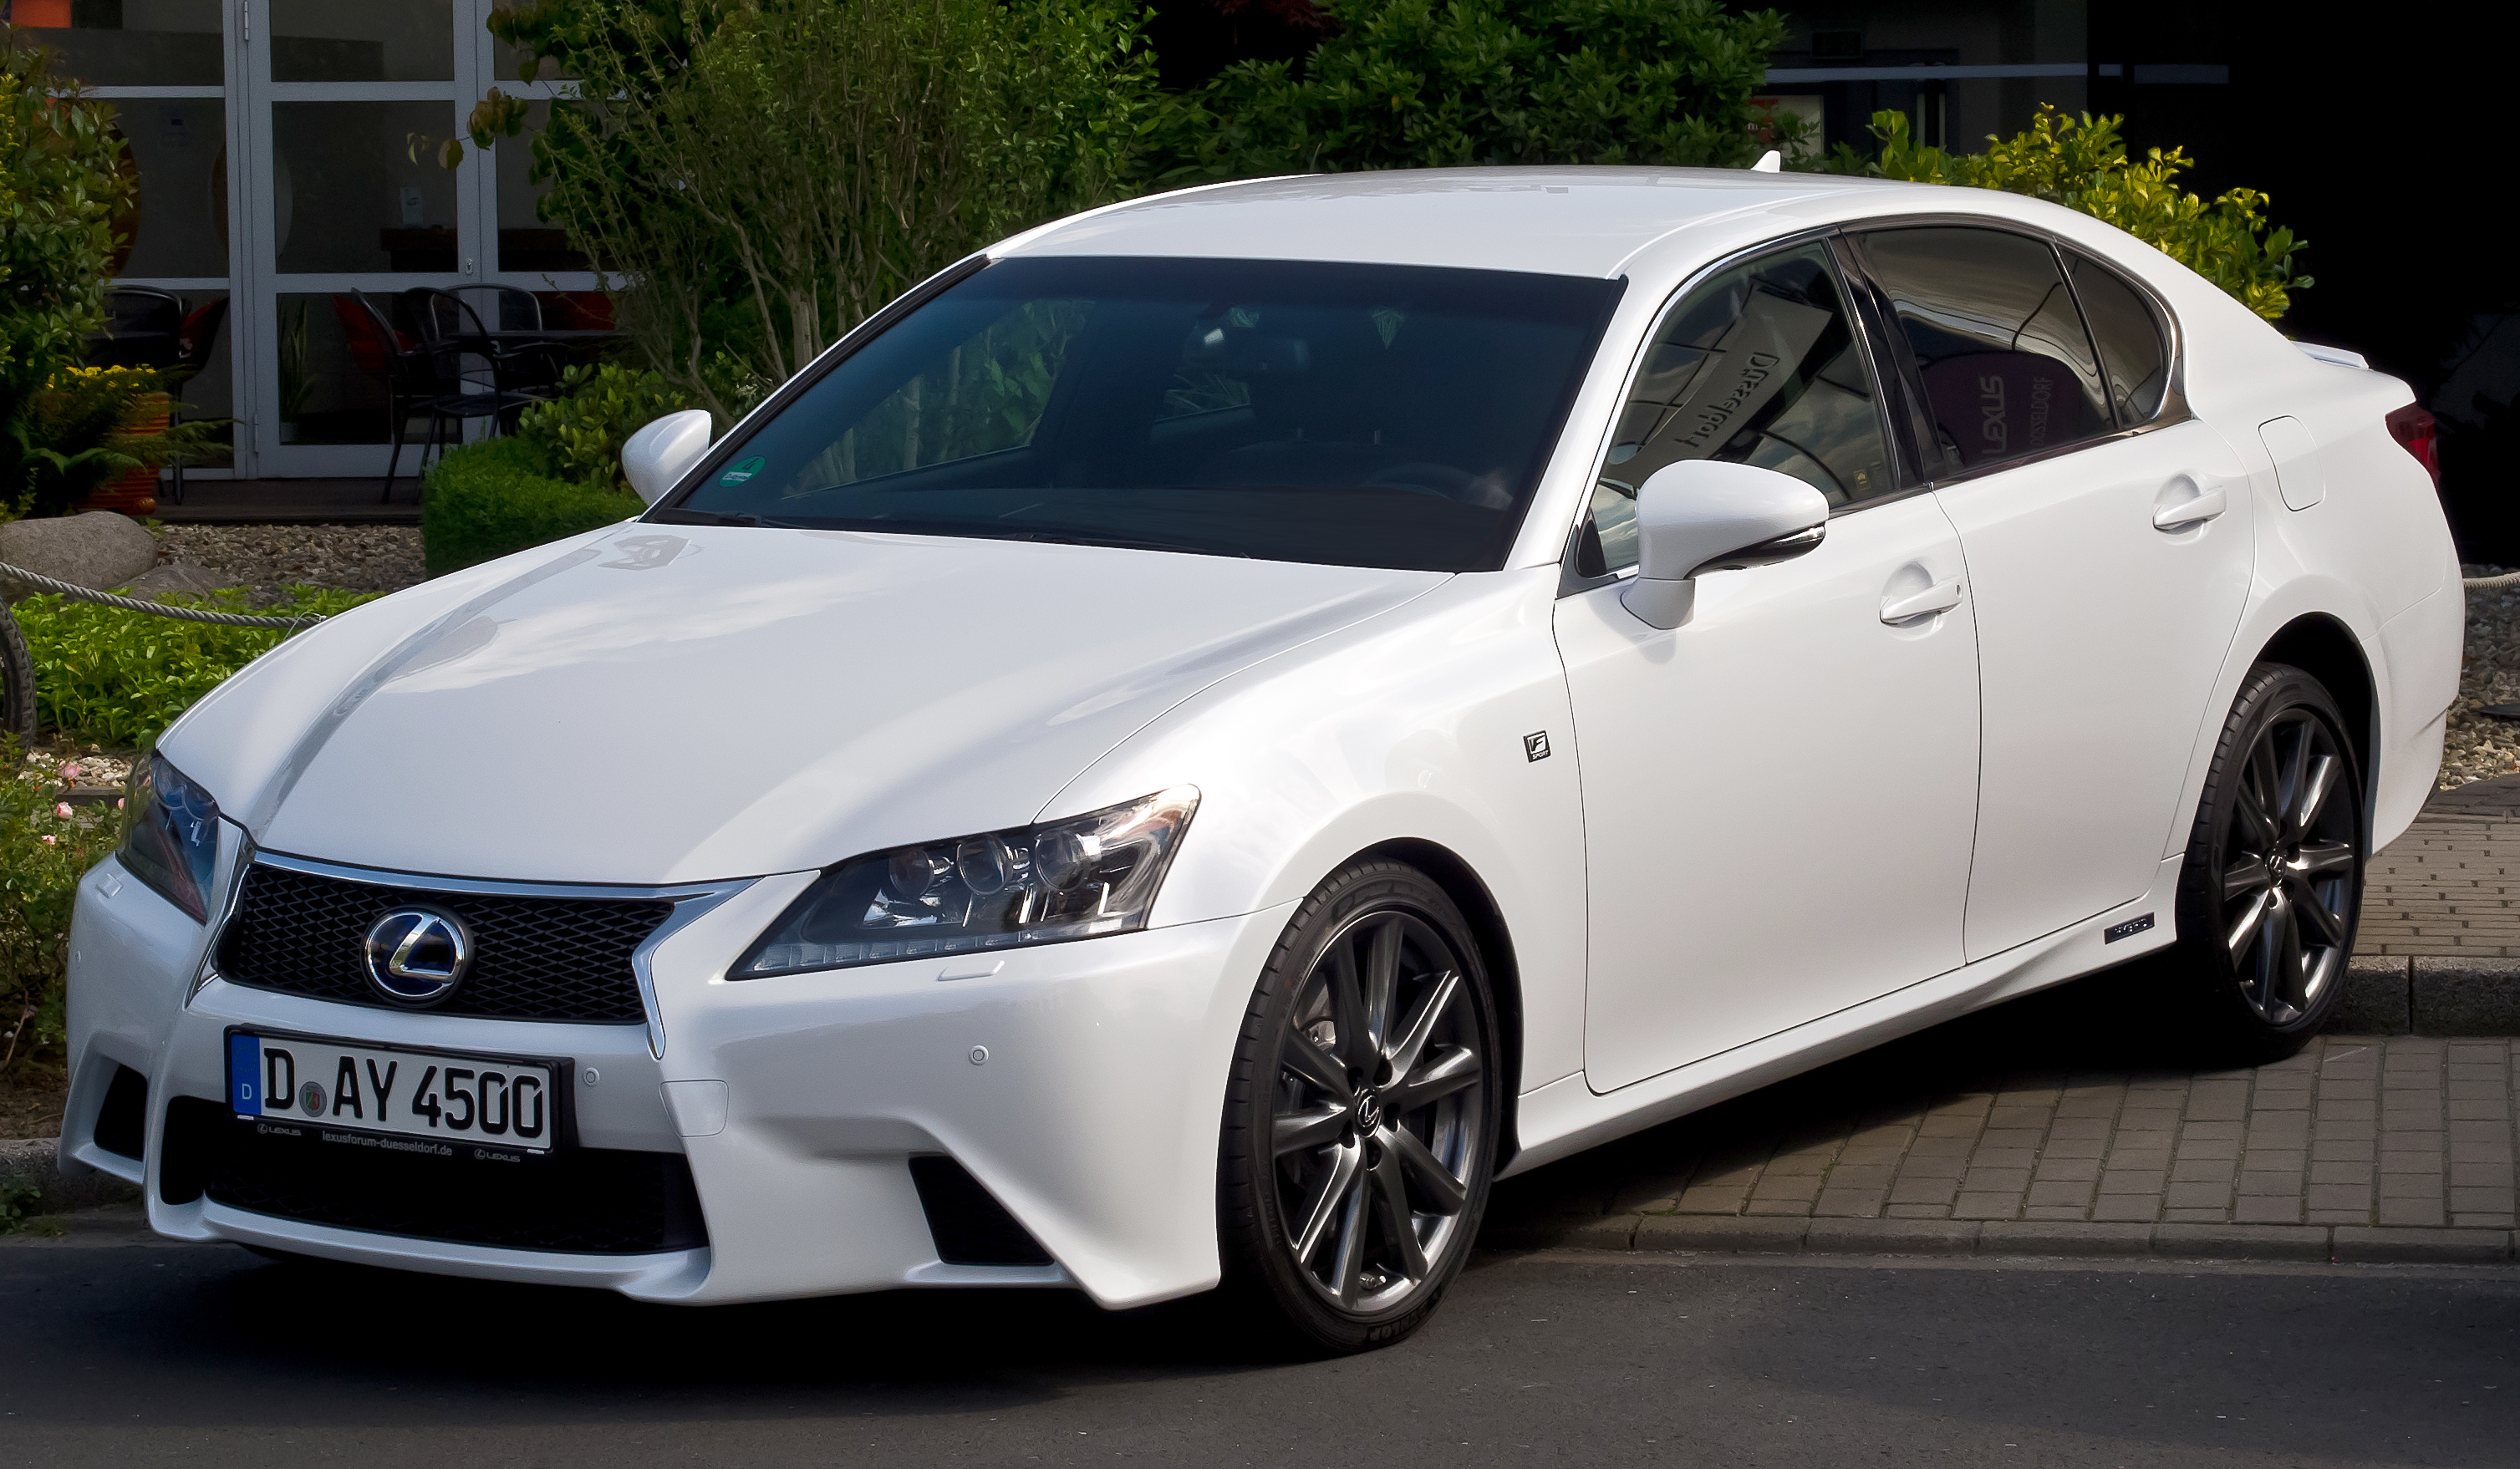 file lexus gs 450h f sport frontansicht 17 juni 2012 d wikimedia commons. Black Bedroom Furniture Sets. Home Design Ideas